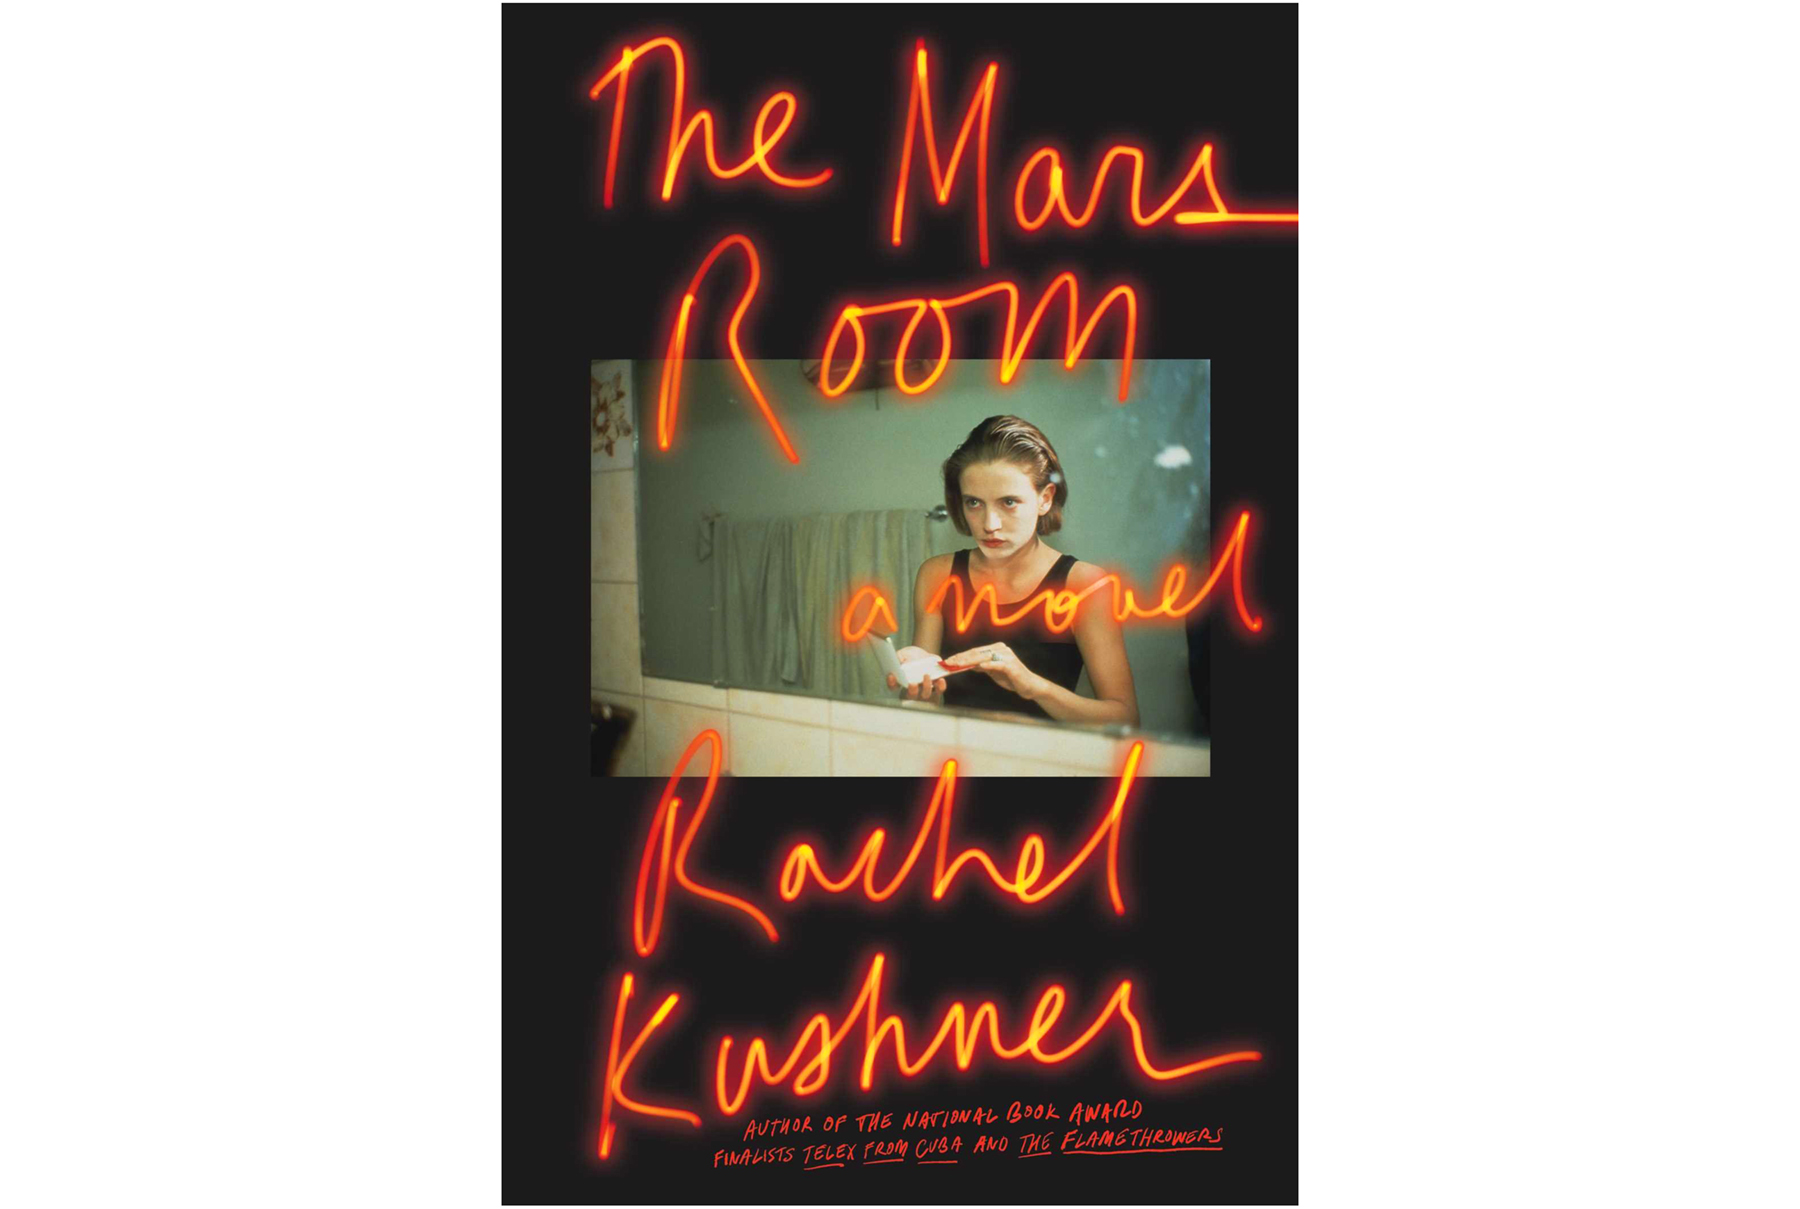 Discussion Books Rachel Kushner, author of The Mars Room